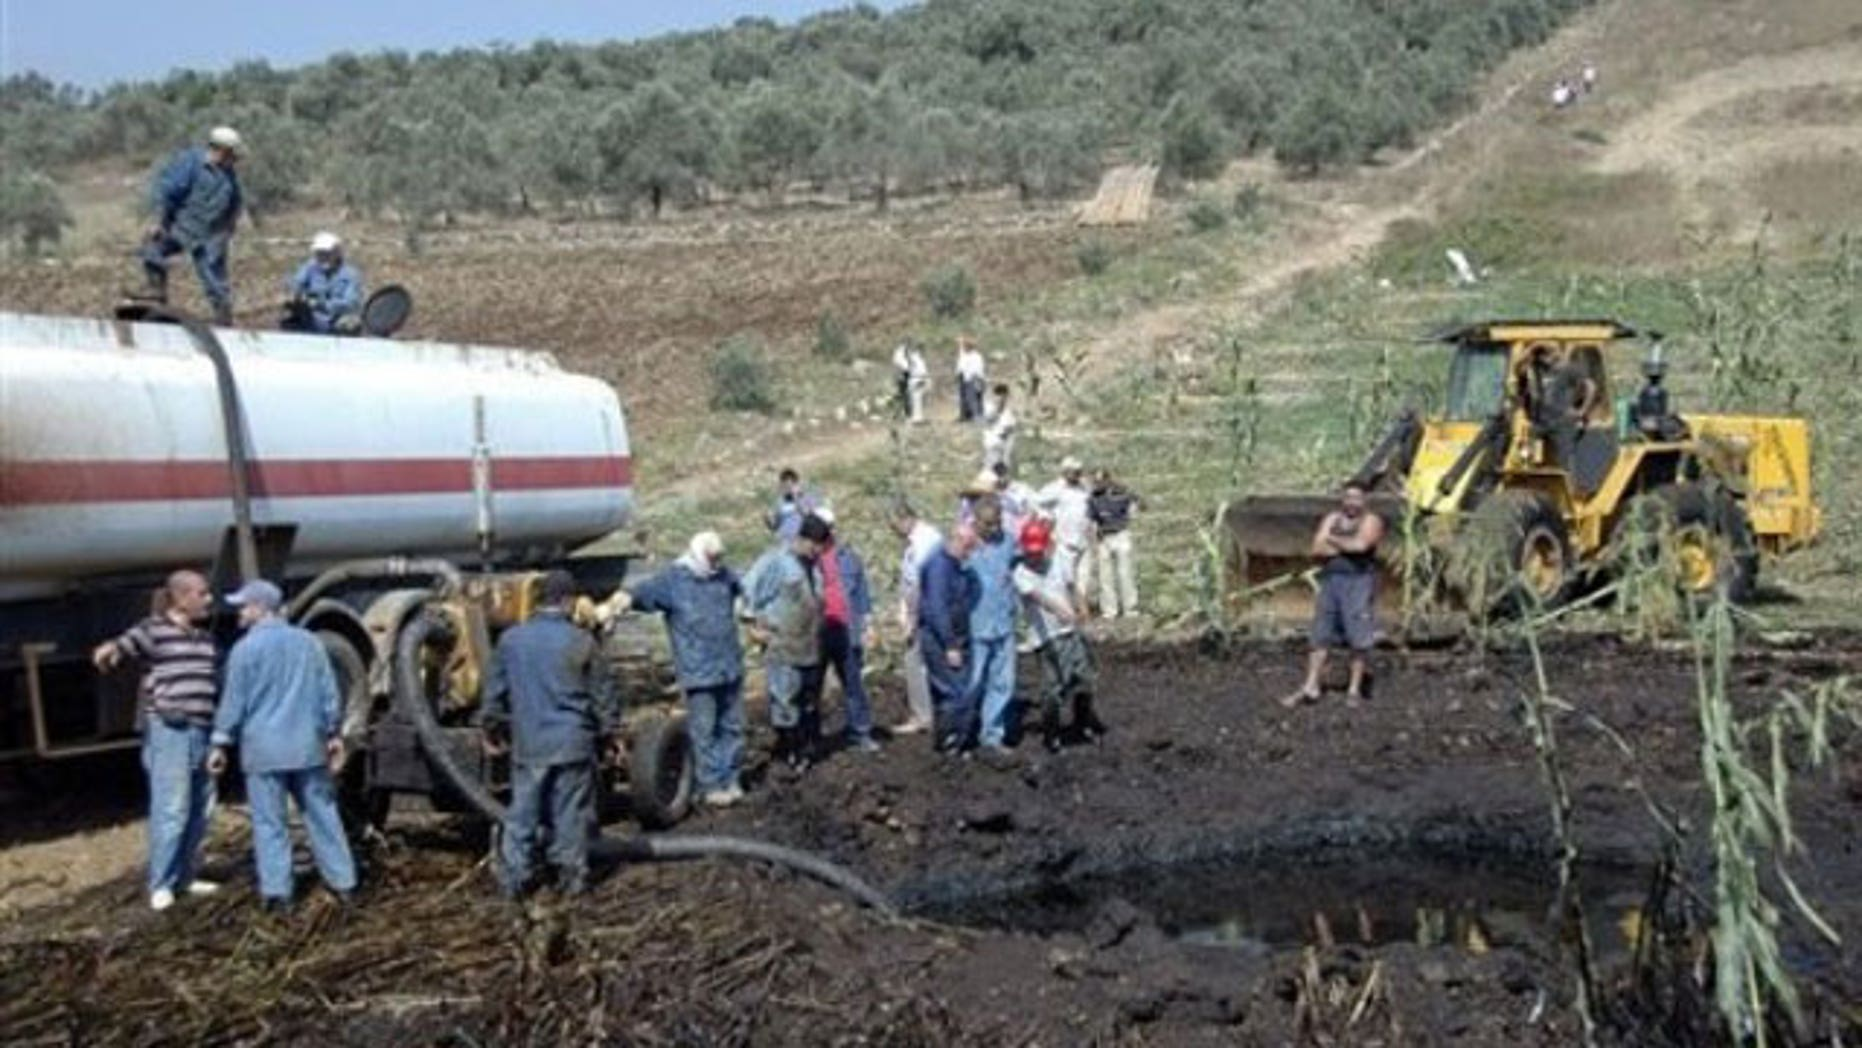 July 29, 2011: In this photo released by the Syrian official news agency SANA, workers pump oil from the site of a bomb blast that struck a major oil pipeline in the western town of Talkalakh, Syria.